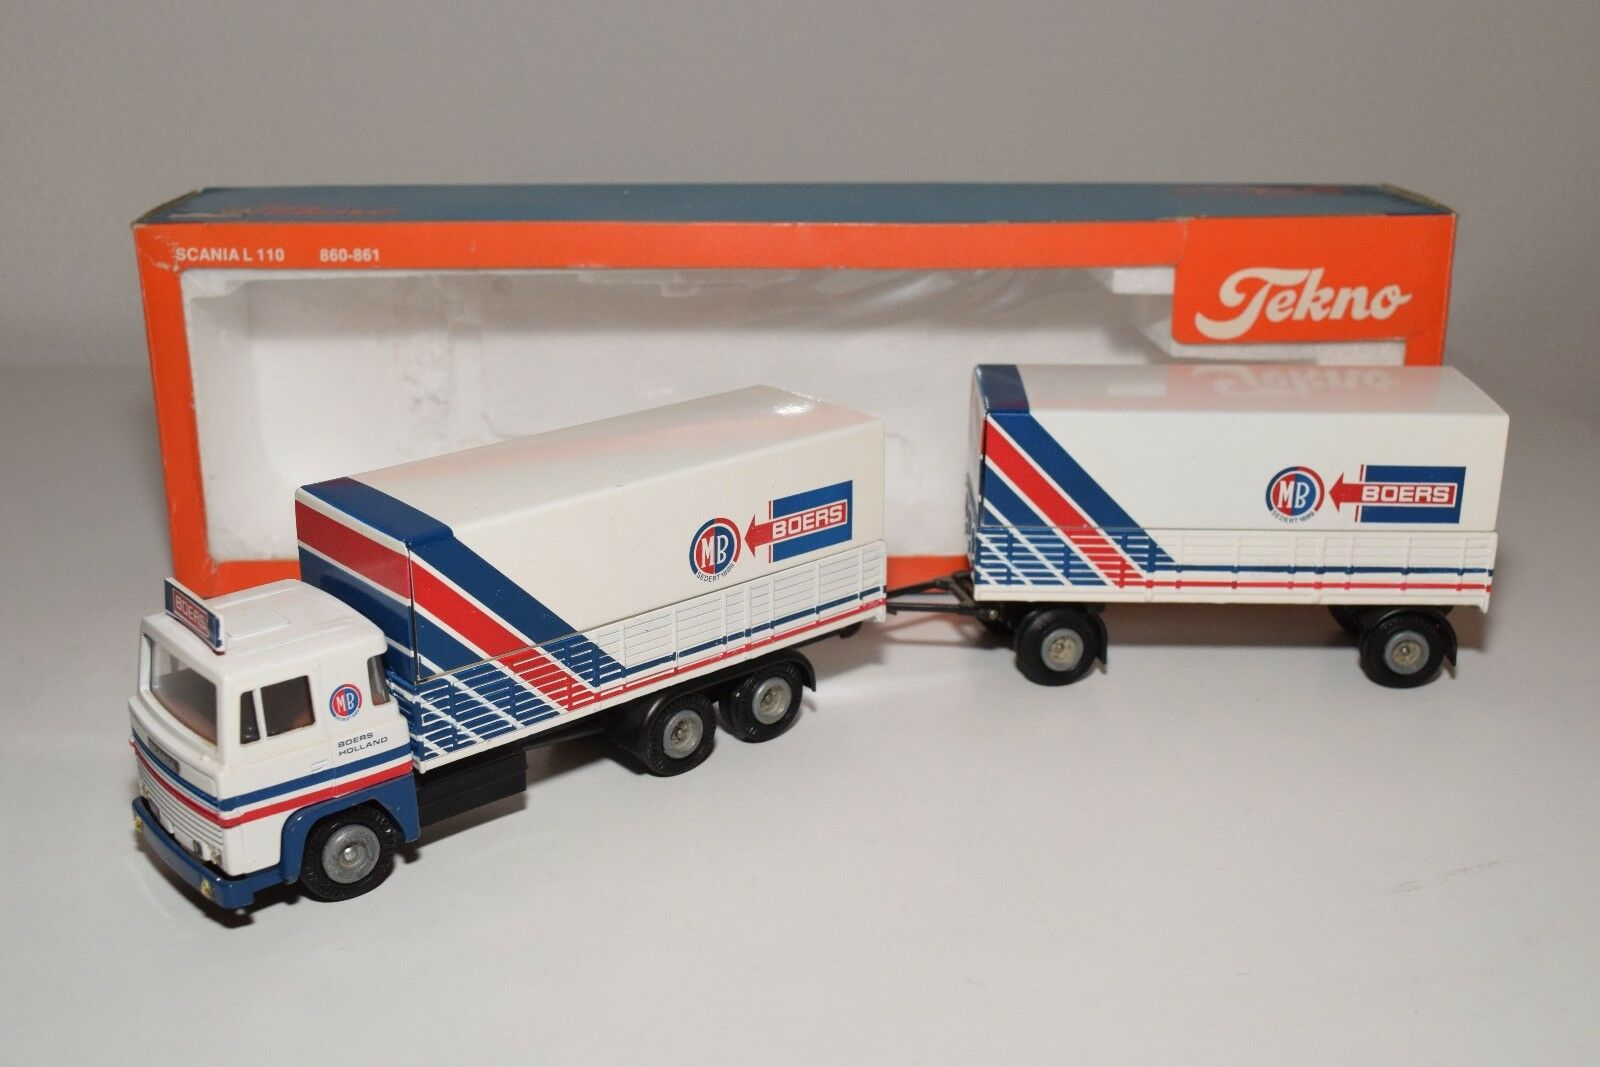 S TEKNO SCANIA 141 M BOERS TRUCK WITH TRAILER MINT BOXED